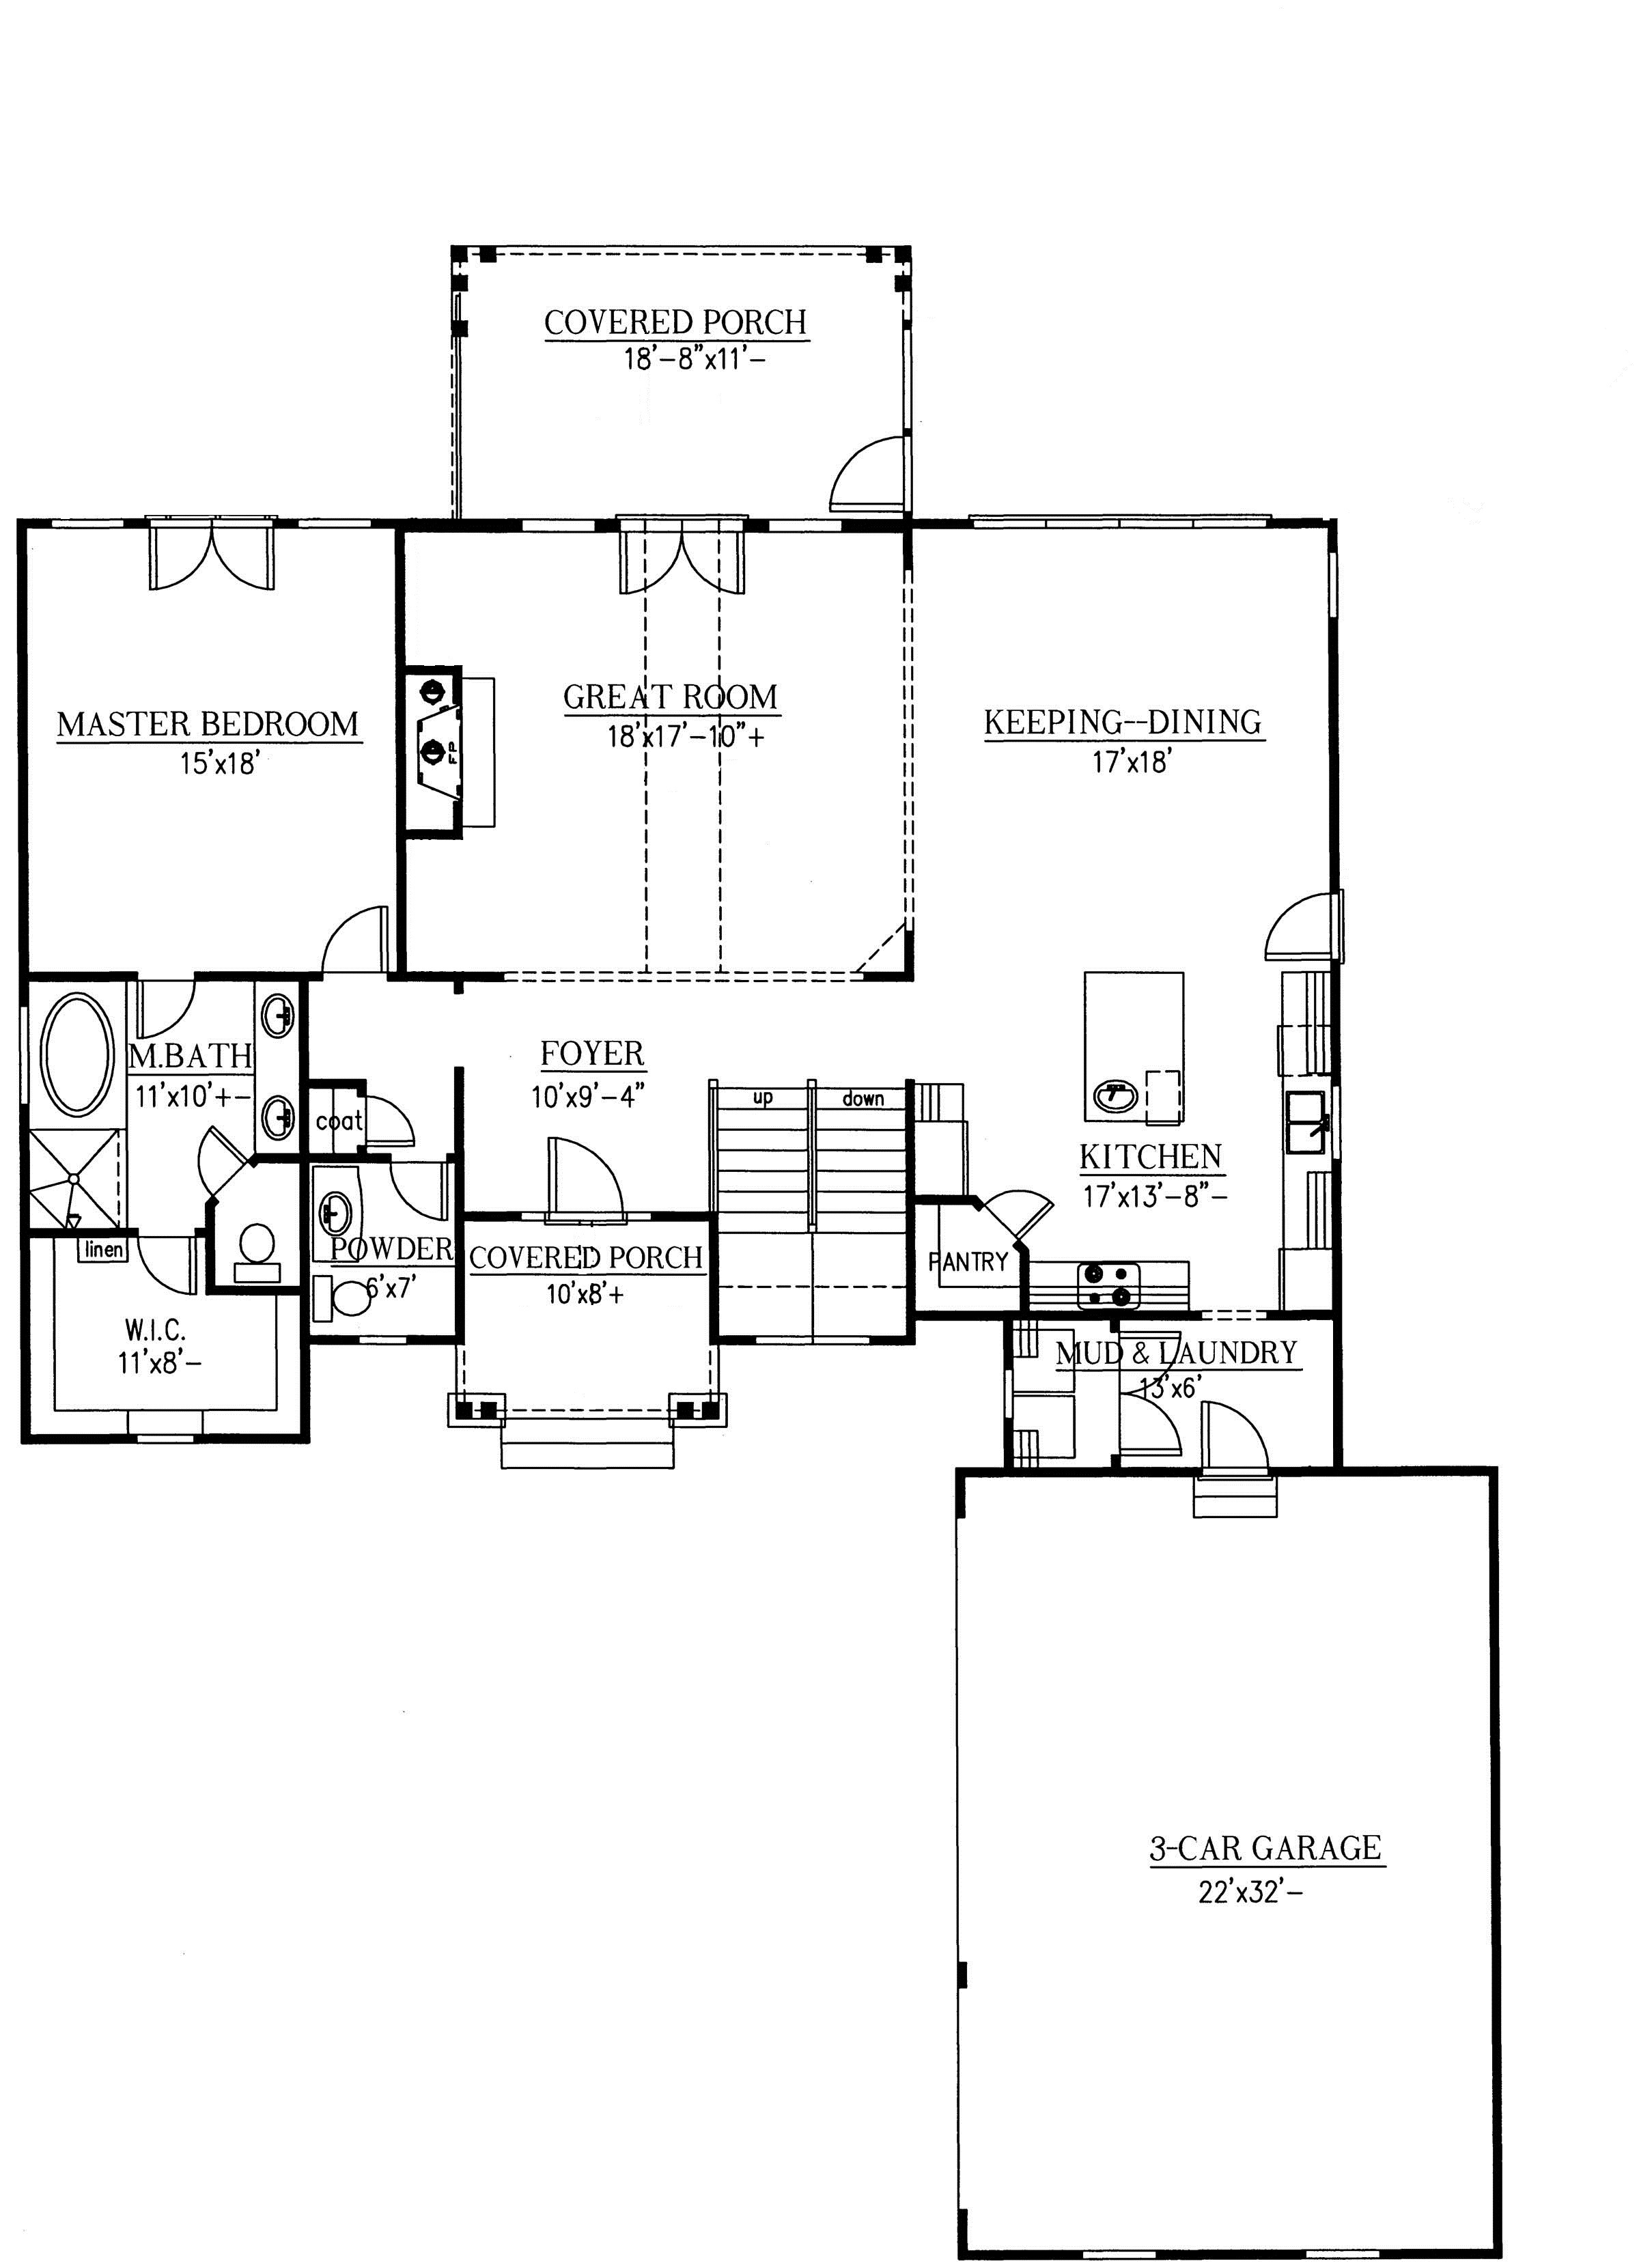 Great room with loft first floor plan sdl custom homes for Two story loft floor plans